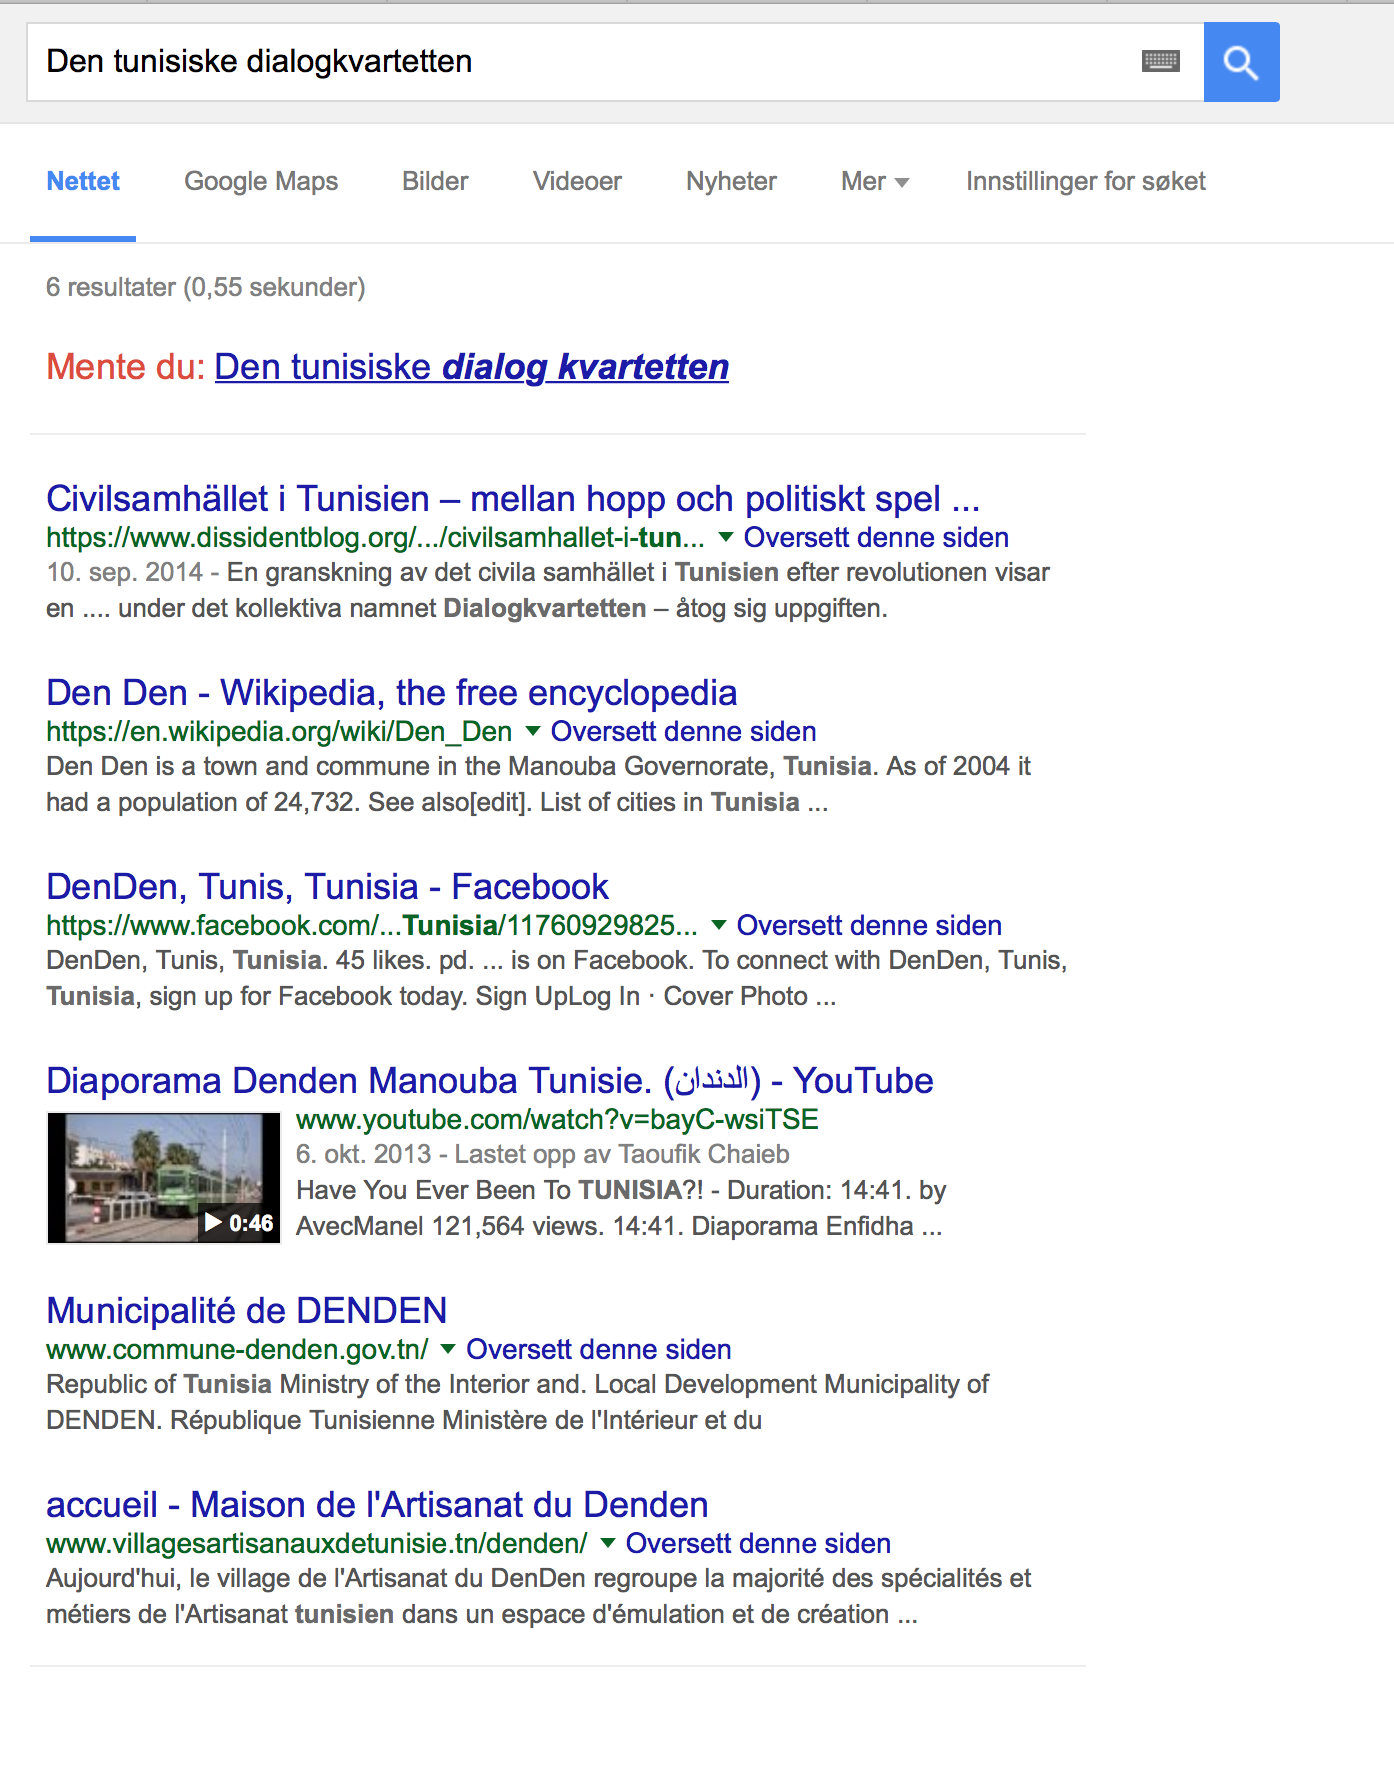 "Google results for ""Den tunisiske dialogkvartteten"" at 11:00 CET, 6 results"